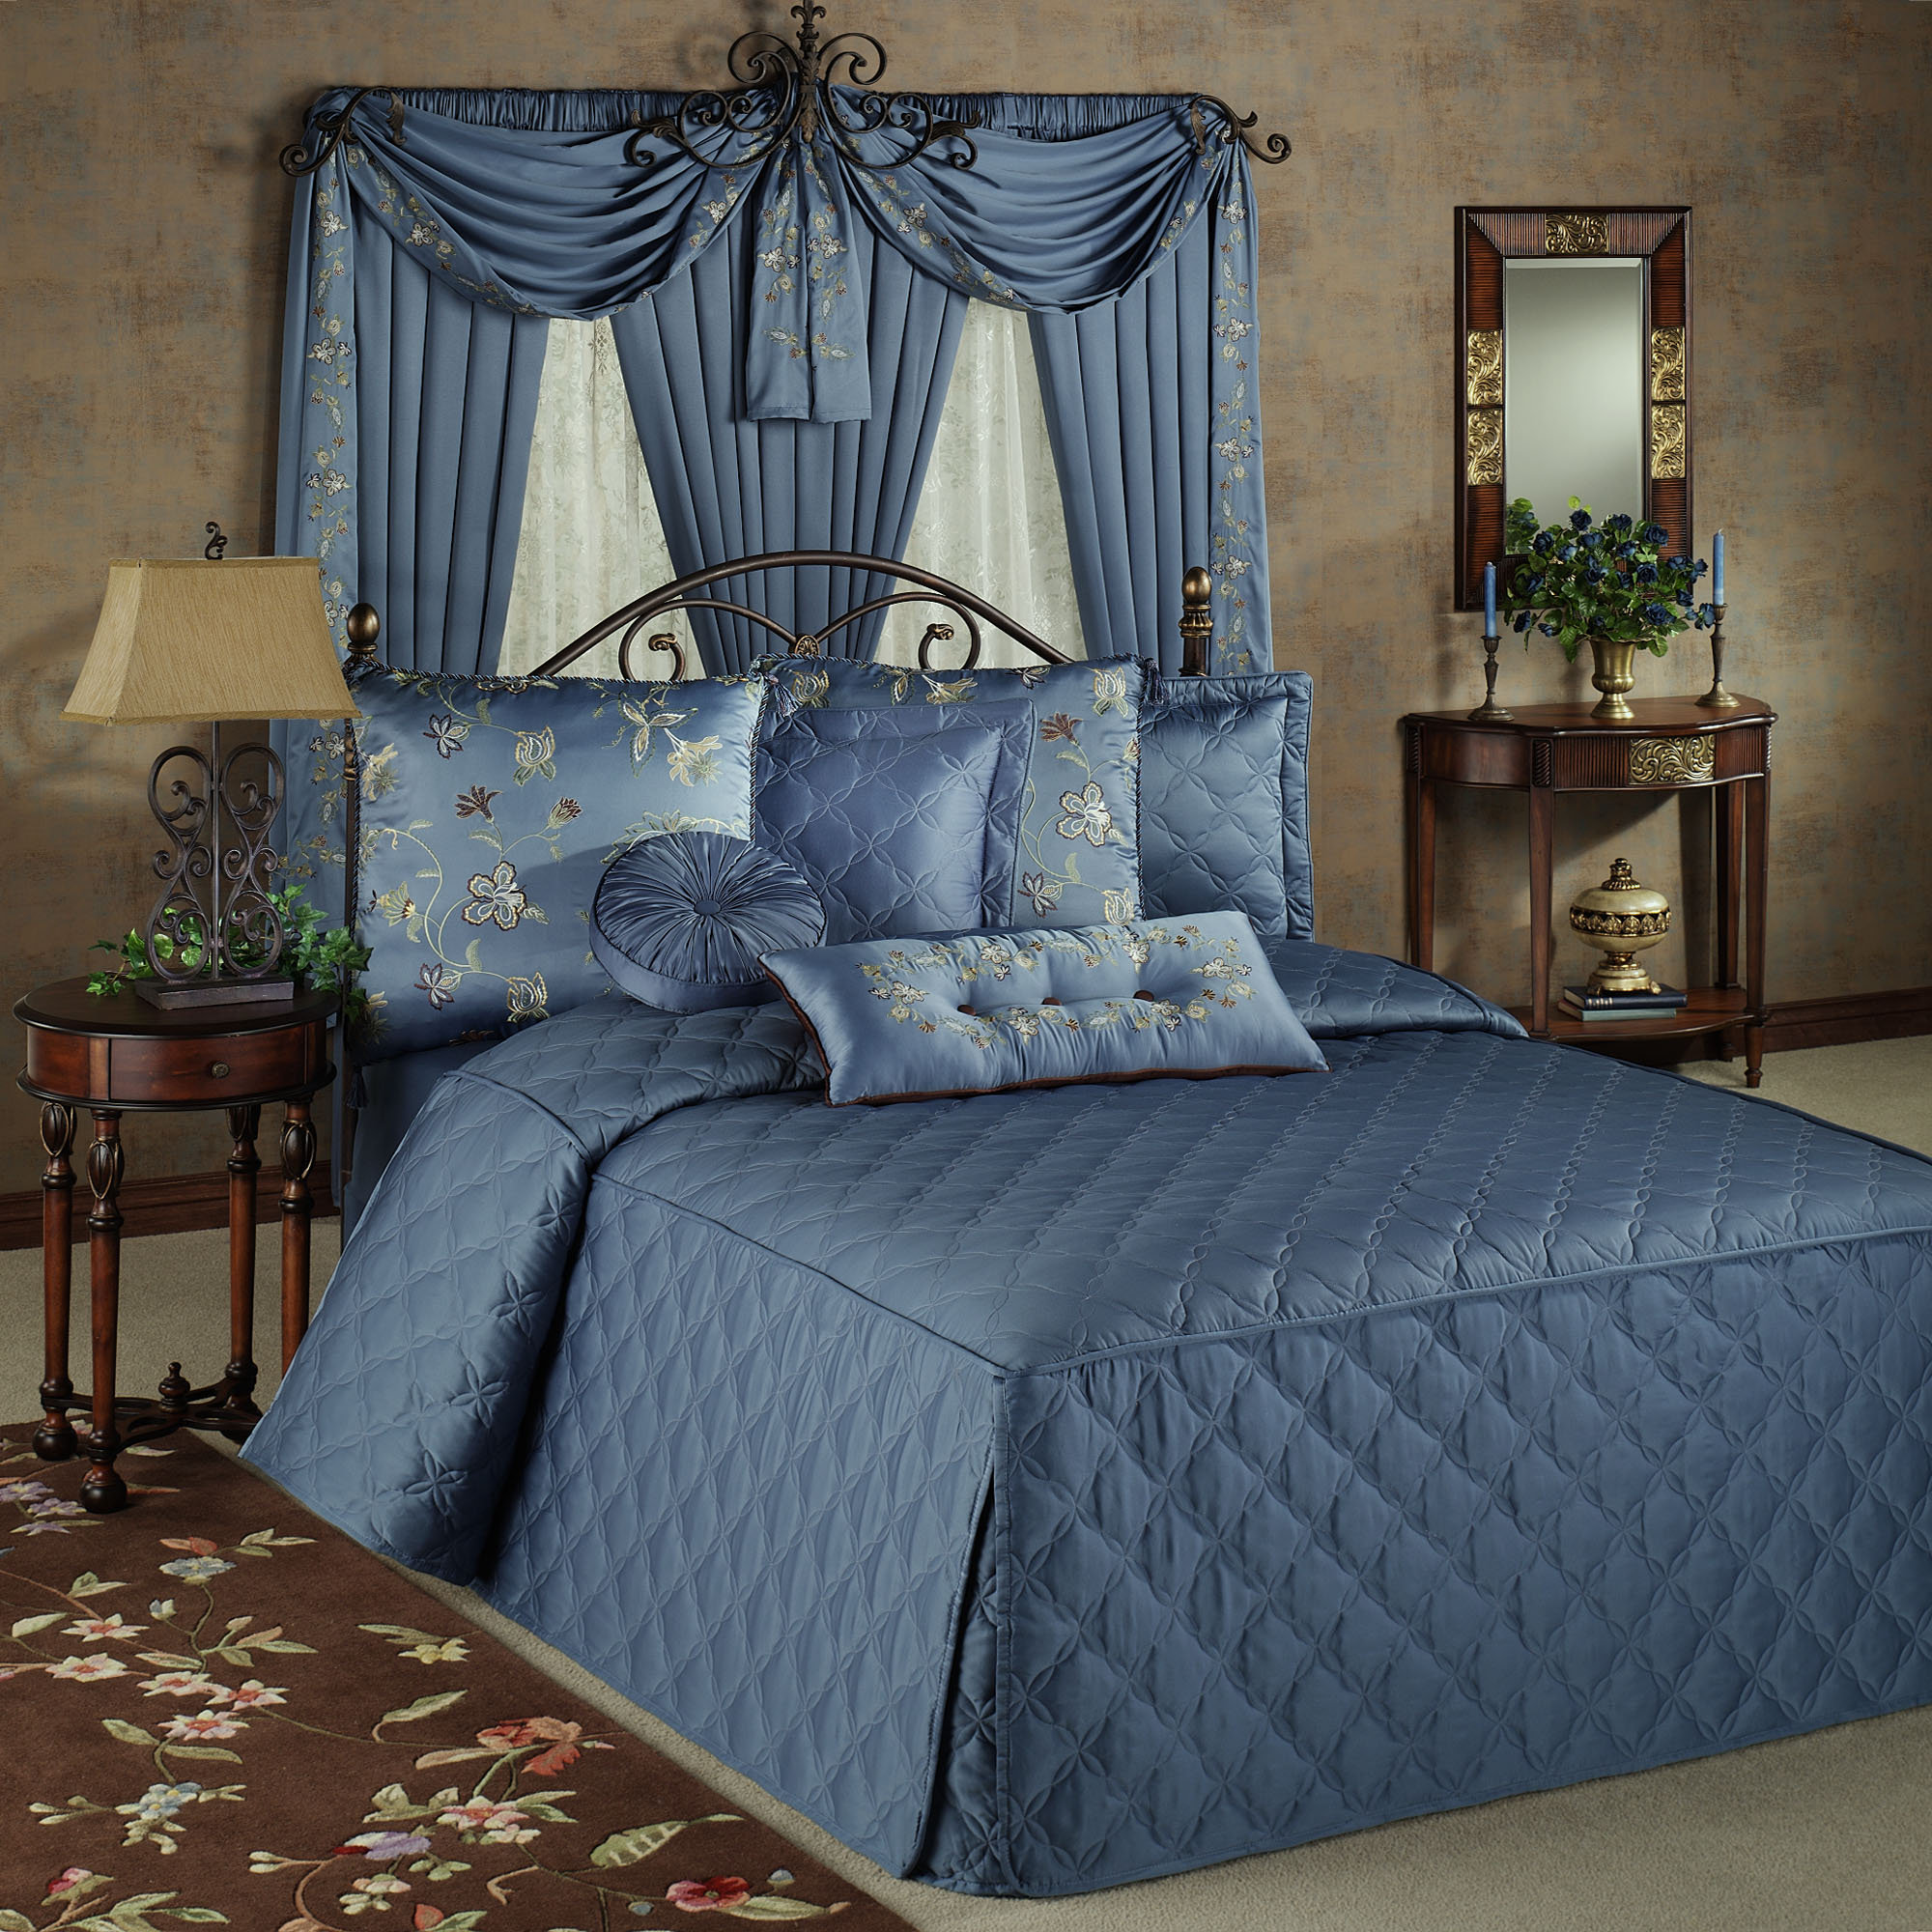 Bedroom Wonderful Queen Bedspreads For Bedroom Decoration